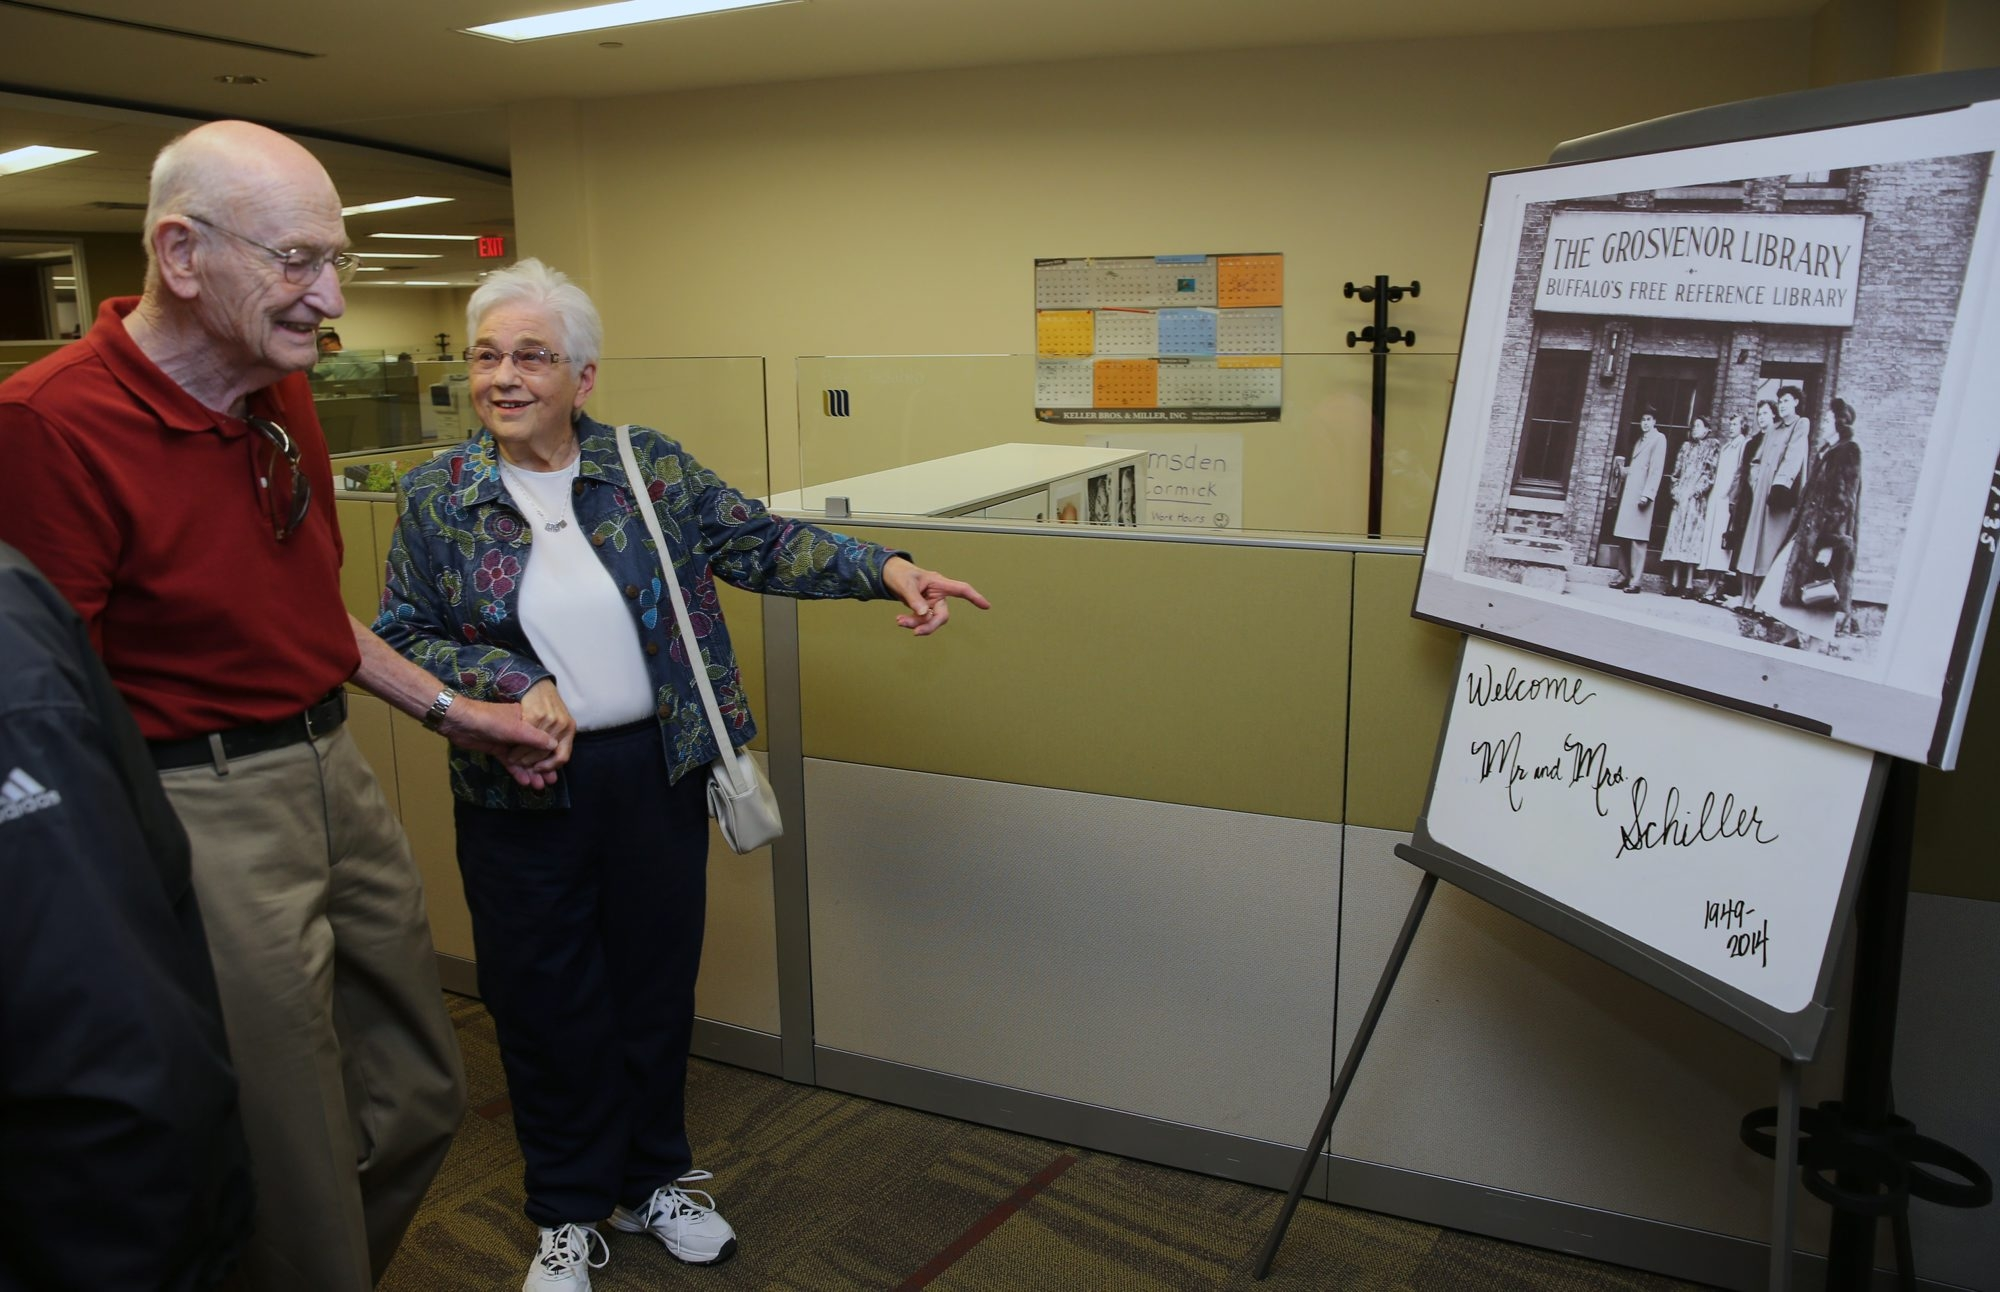 Harvey and Nancy Schiller look at an old photo from when the Cyclorama building was a library, as they celebrate their 65th anniversary Thursday at the spot where they first became engaged.